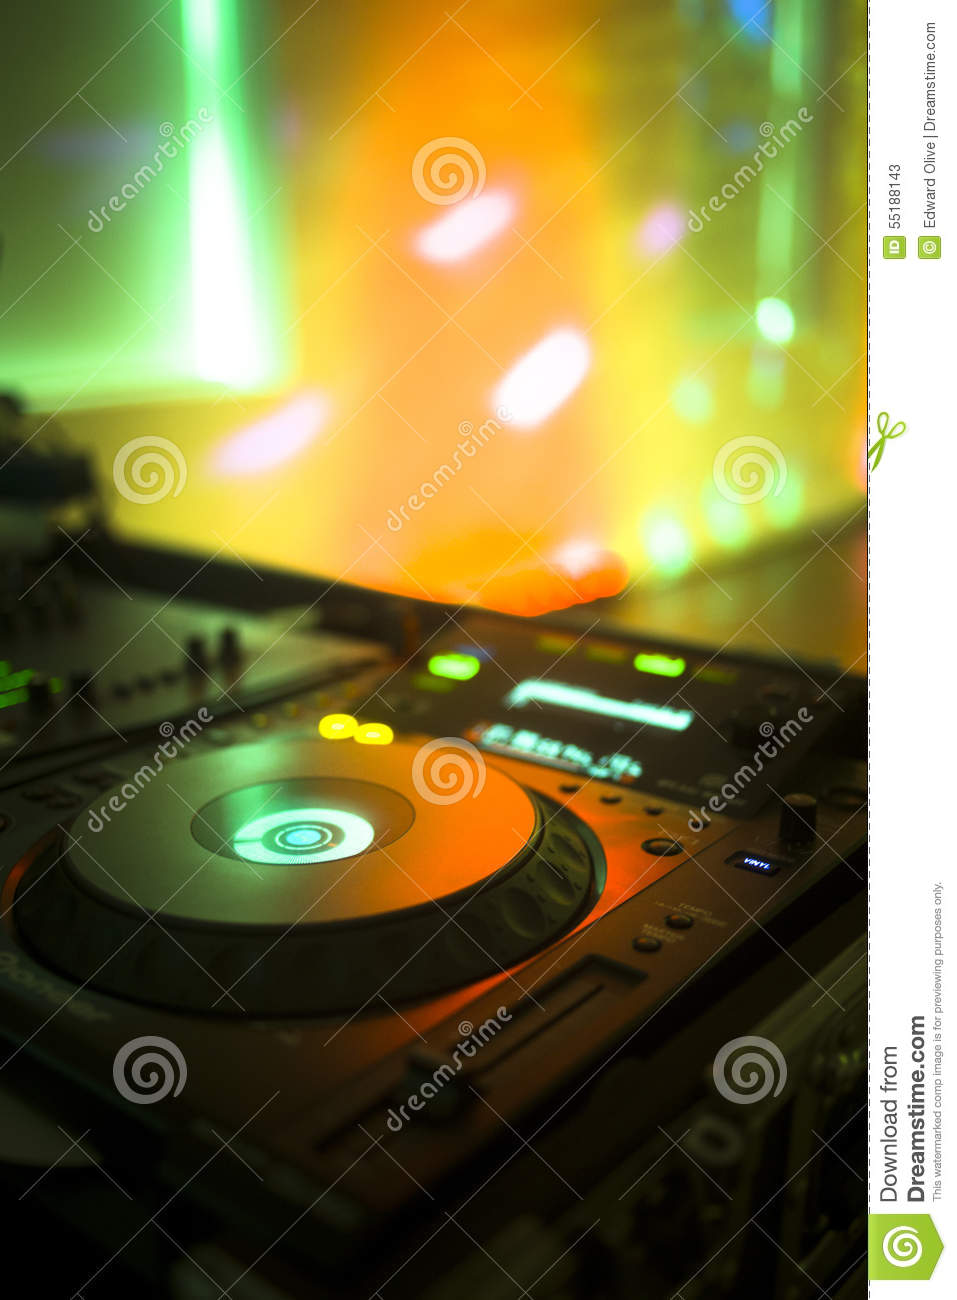 Dj console mixing desk ibiza house music party nightclub for House music party